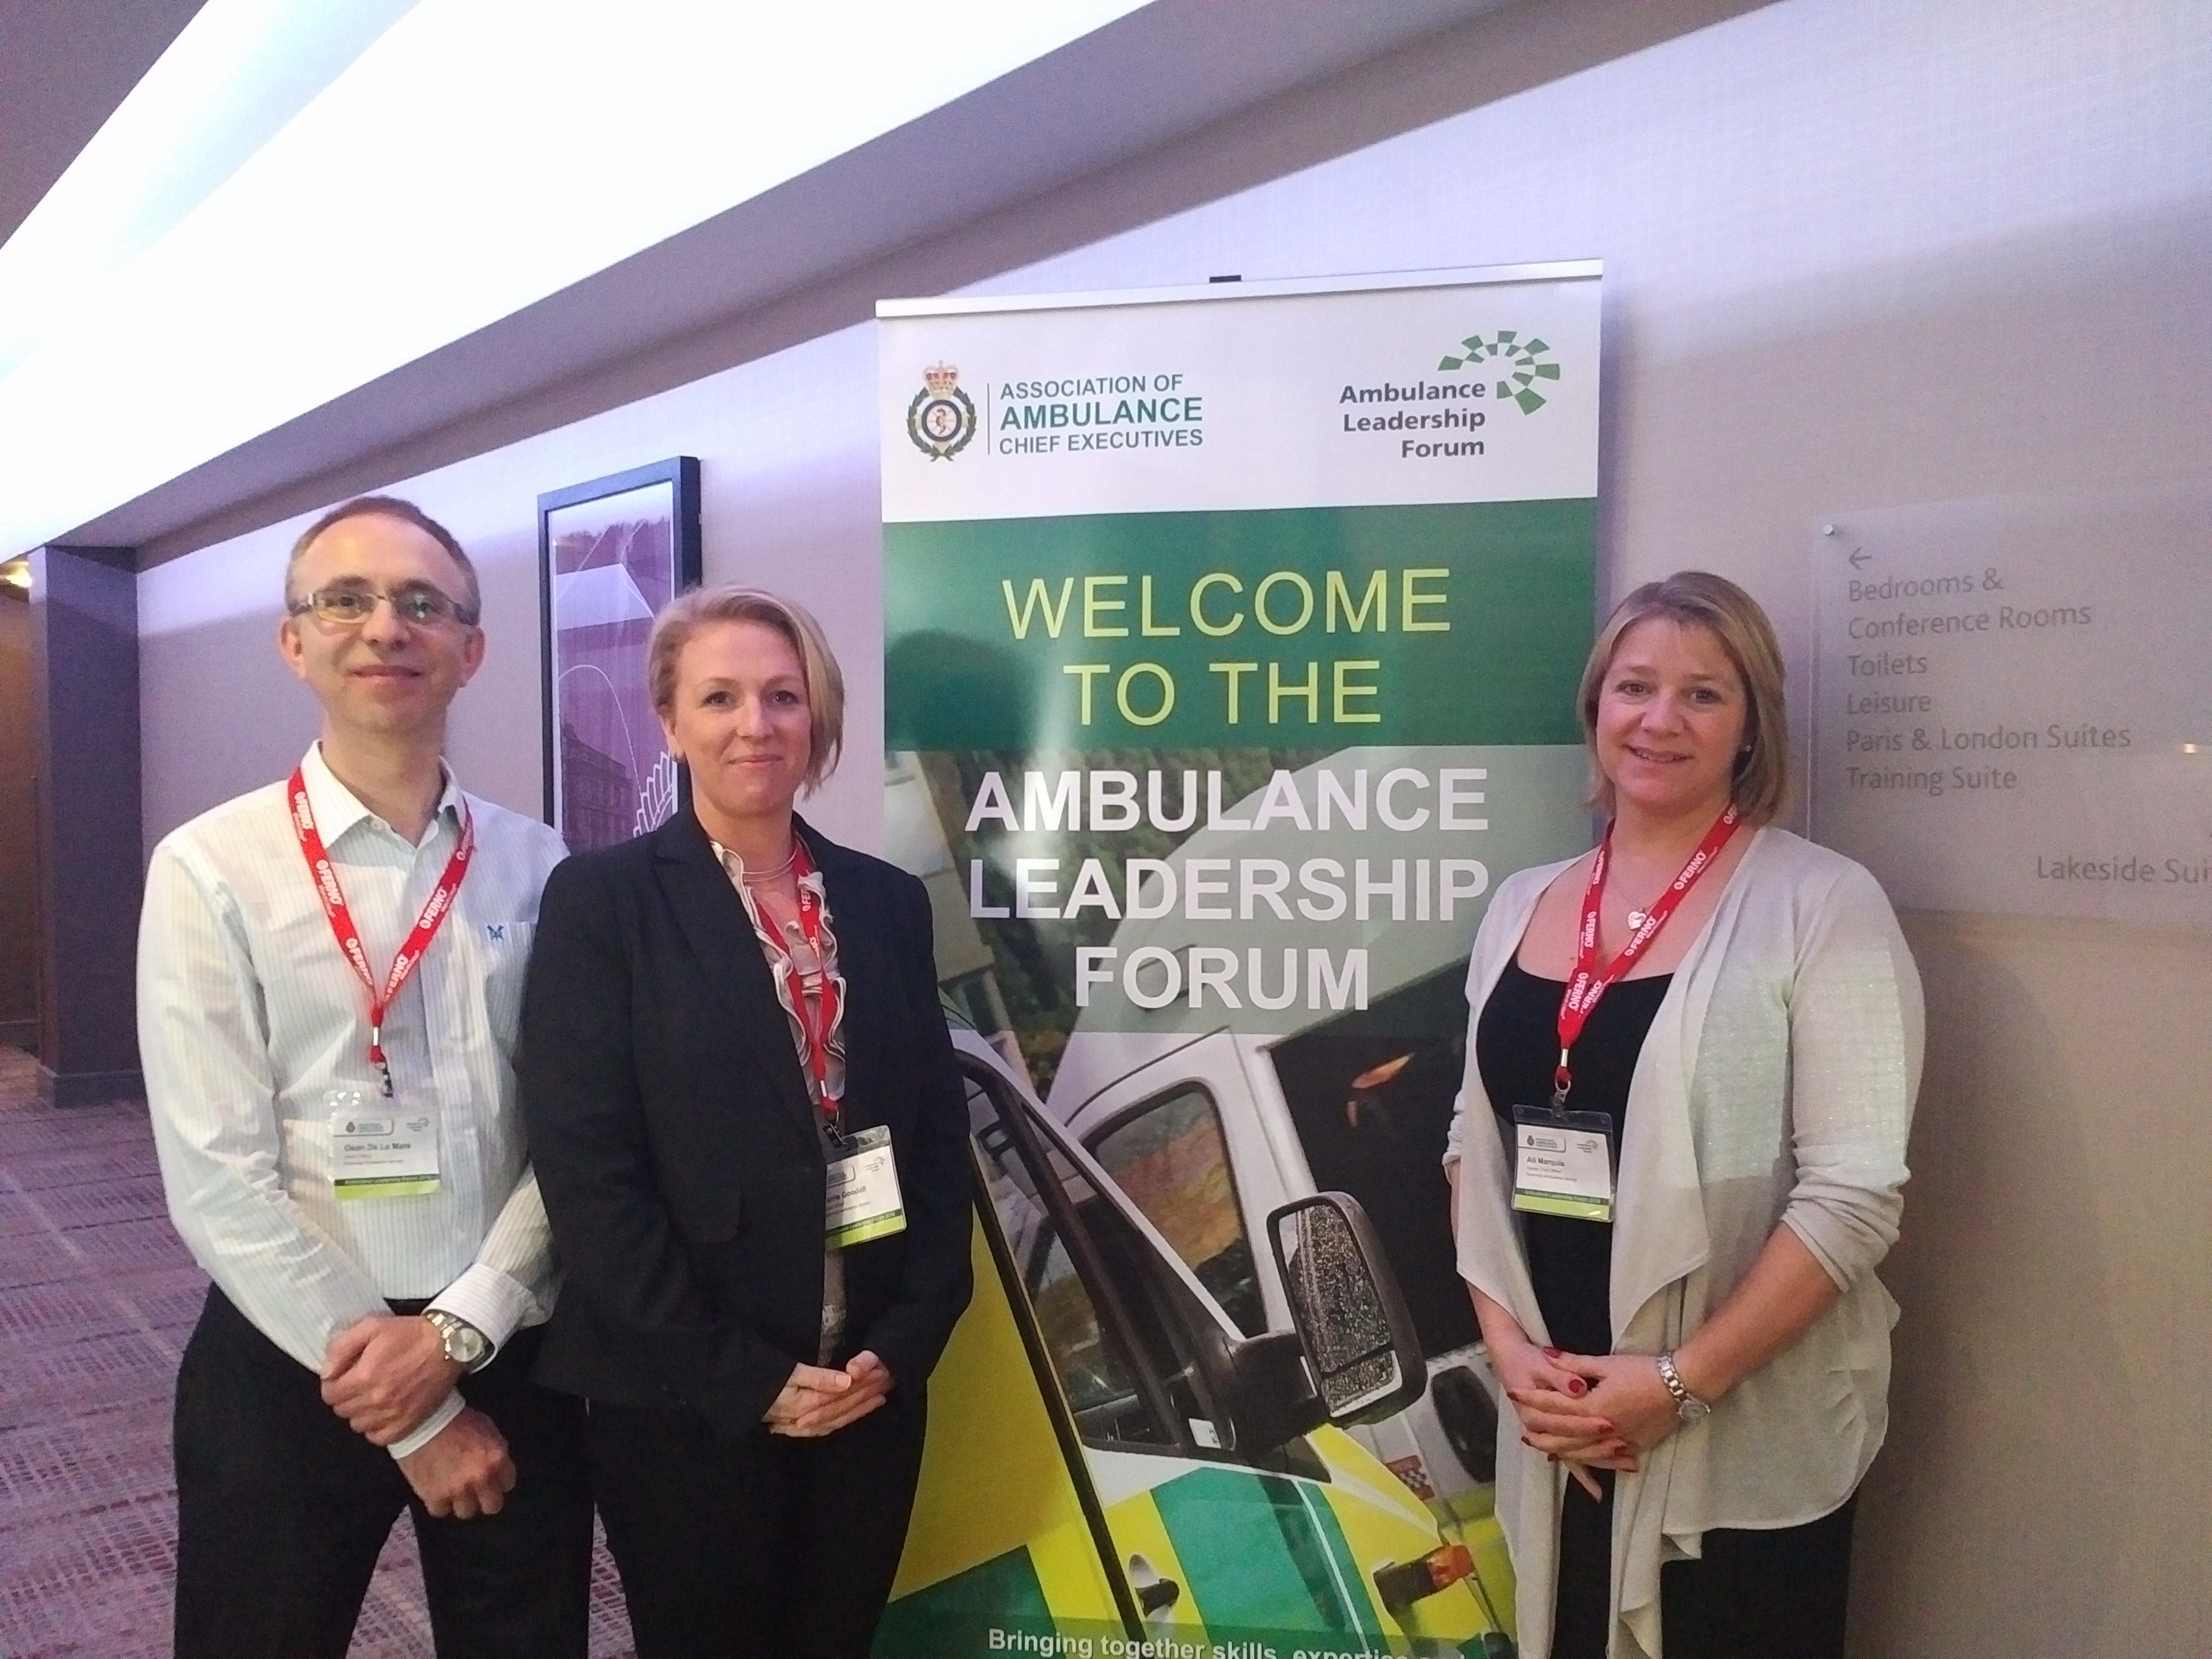 Senior St John Emergency Ambulance Service officers Dean De la Mare, Carrie Goodall and Deputy Chief Officer Ali Marquis at the Ambulance Leadership forum